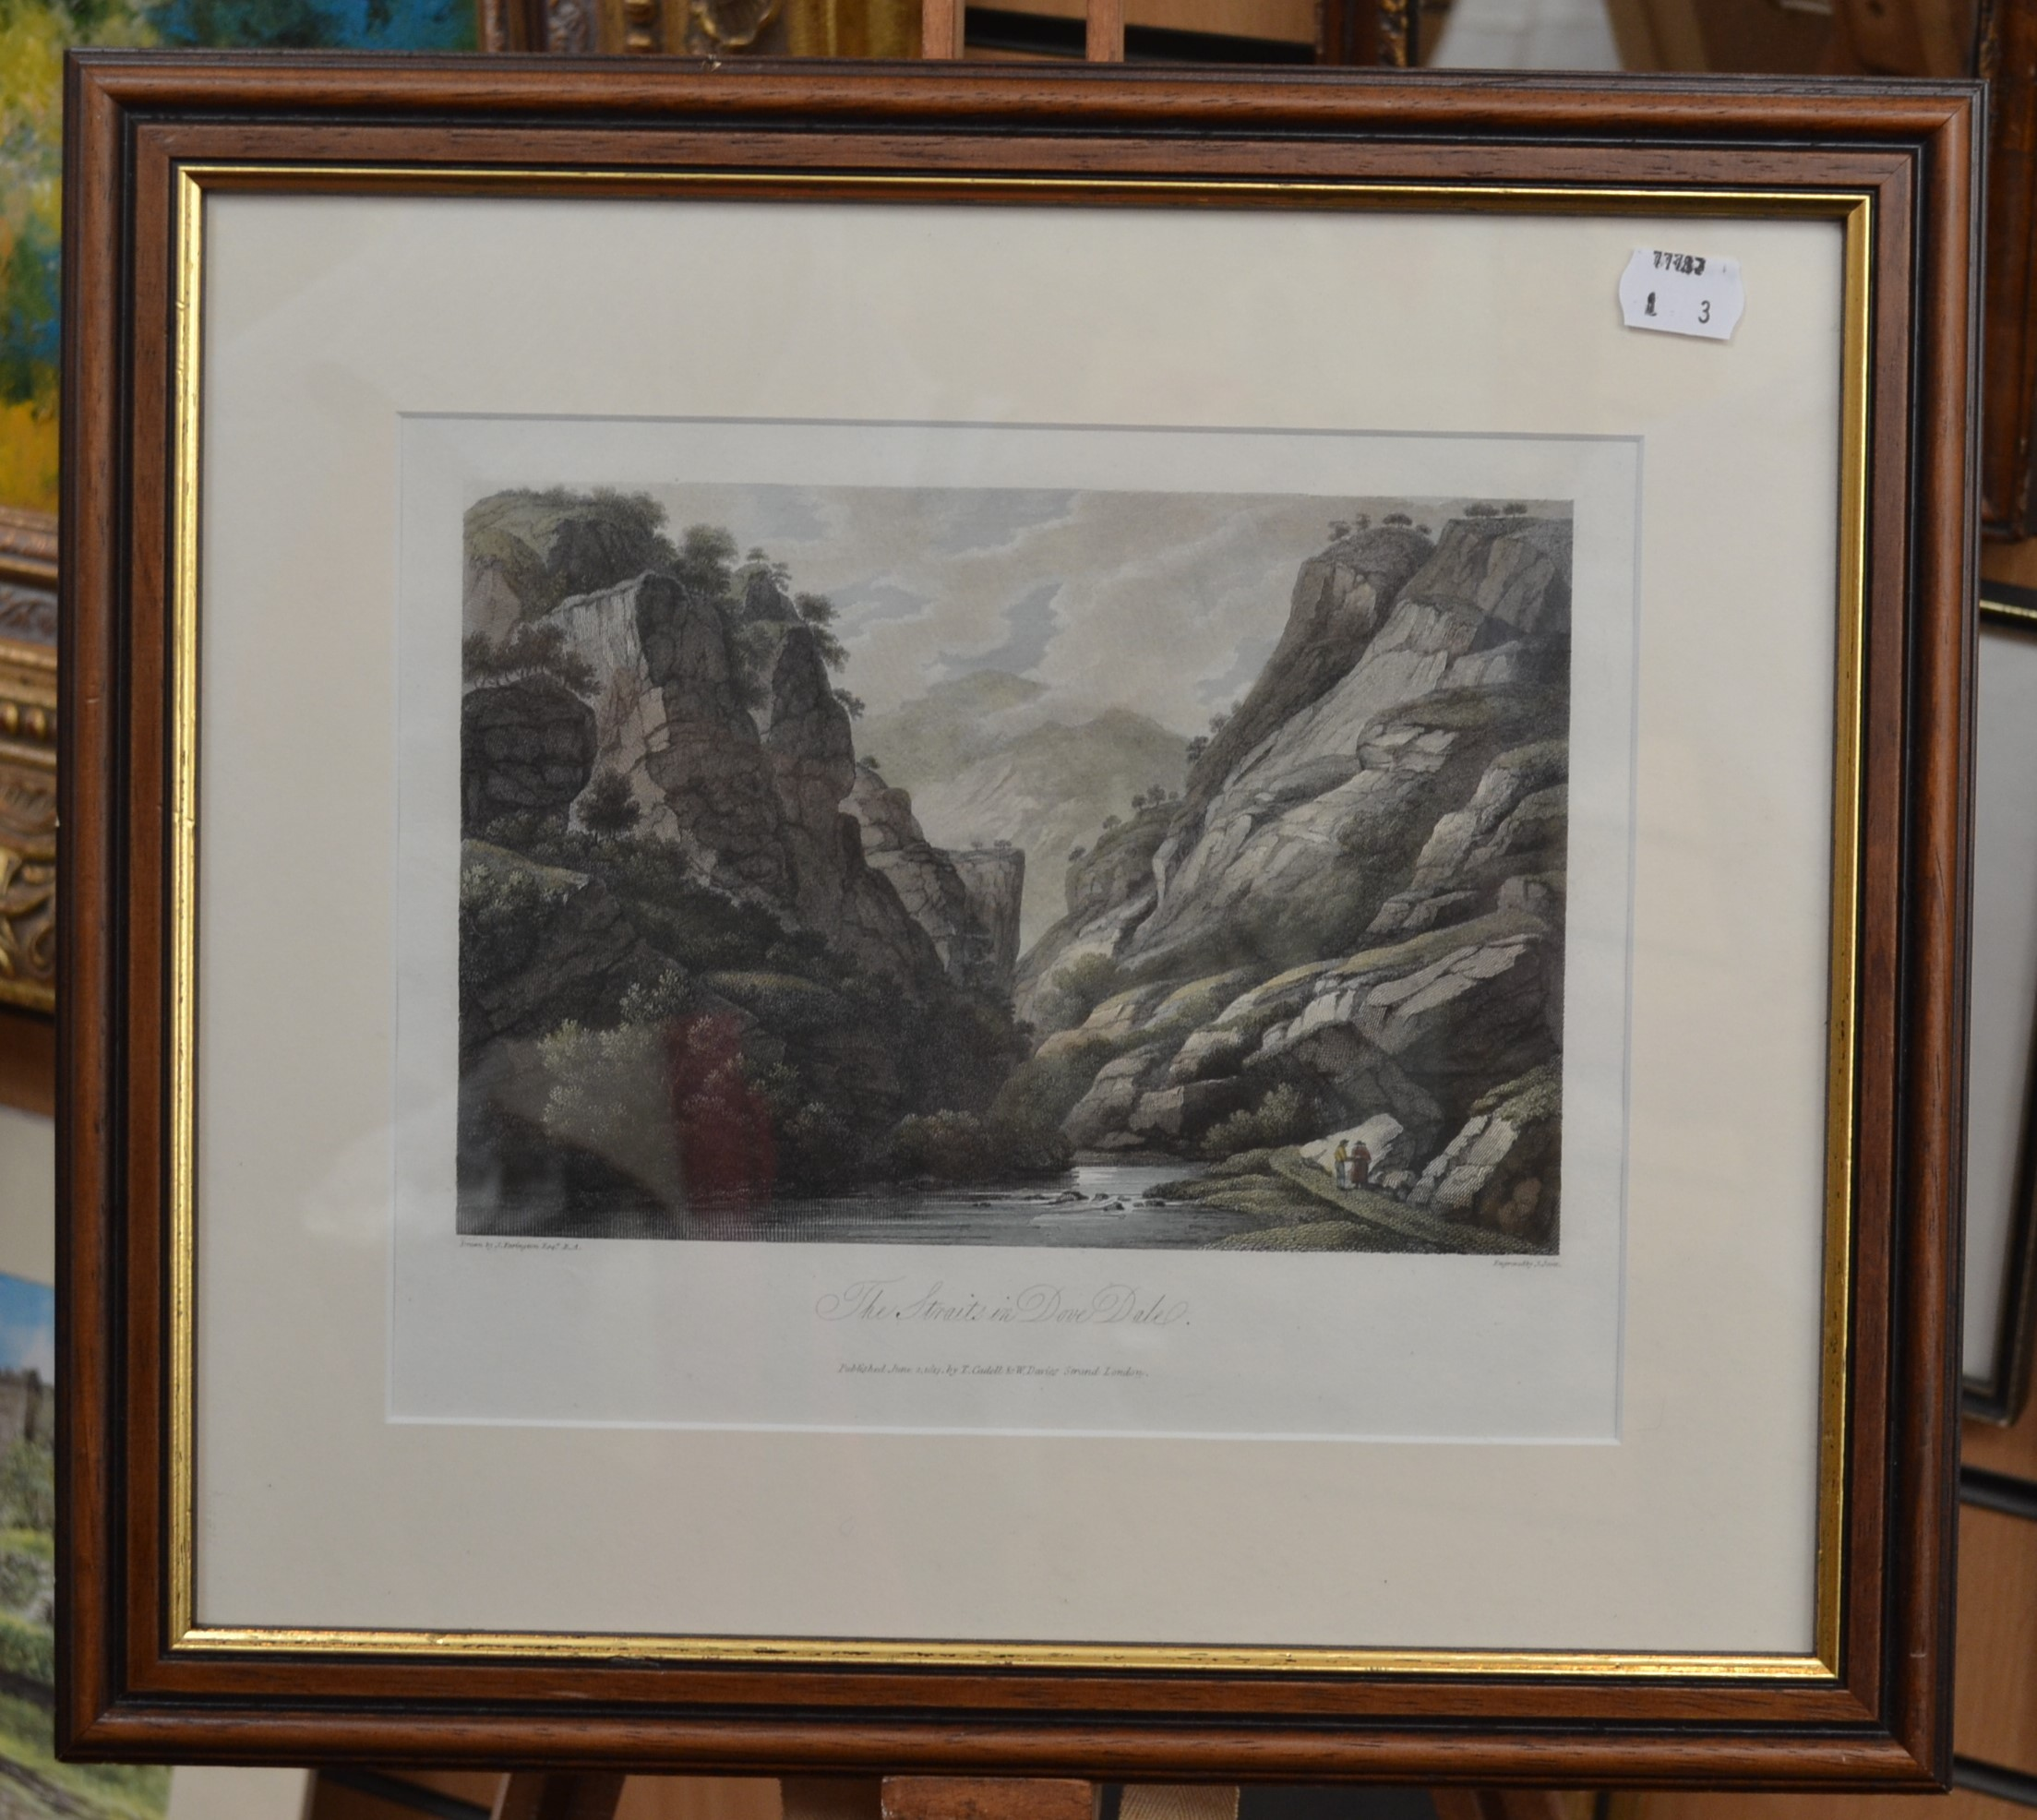 Lot 2019 - A collection of prints, The Straits in Dovedale, Derbyshire, 1871, by J.